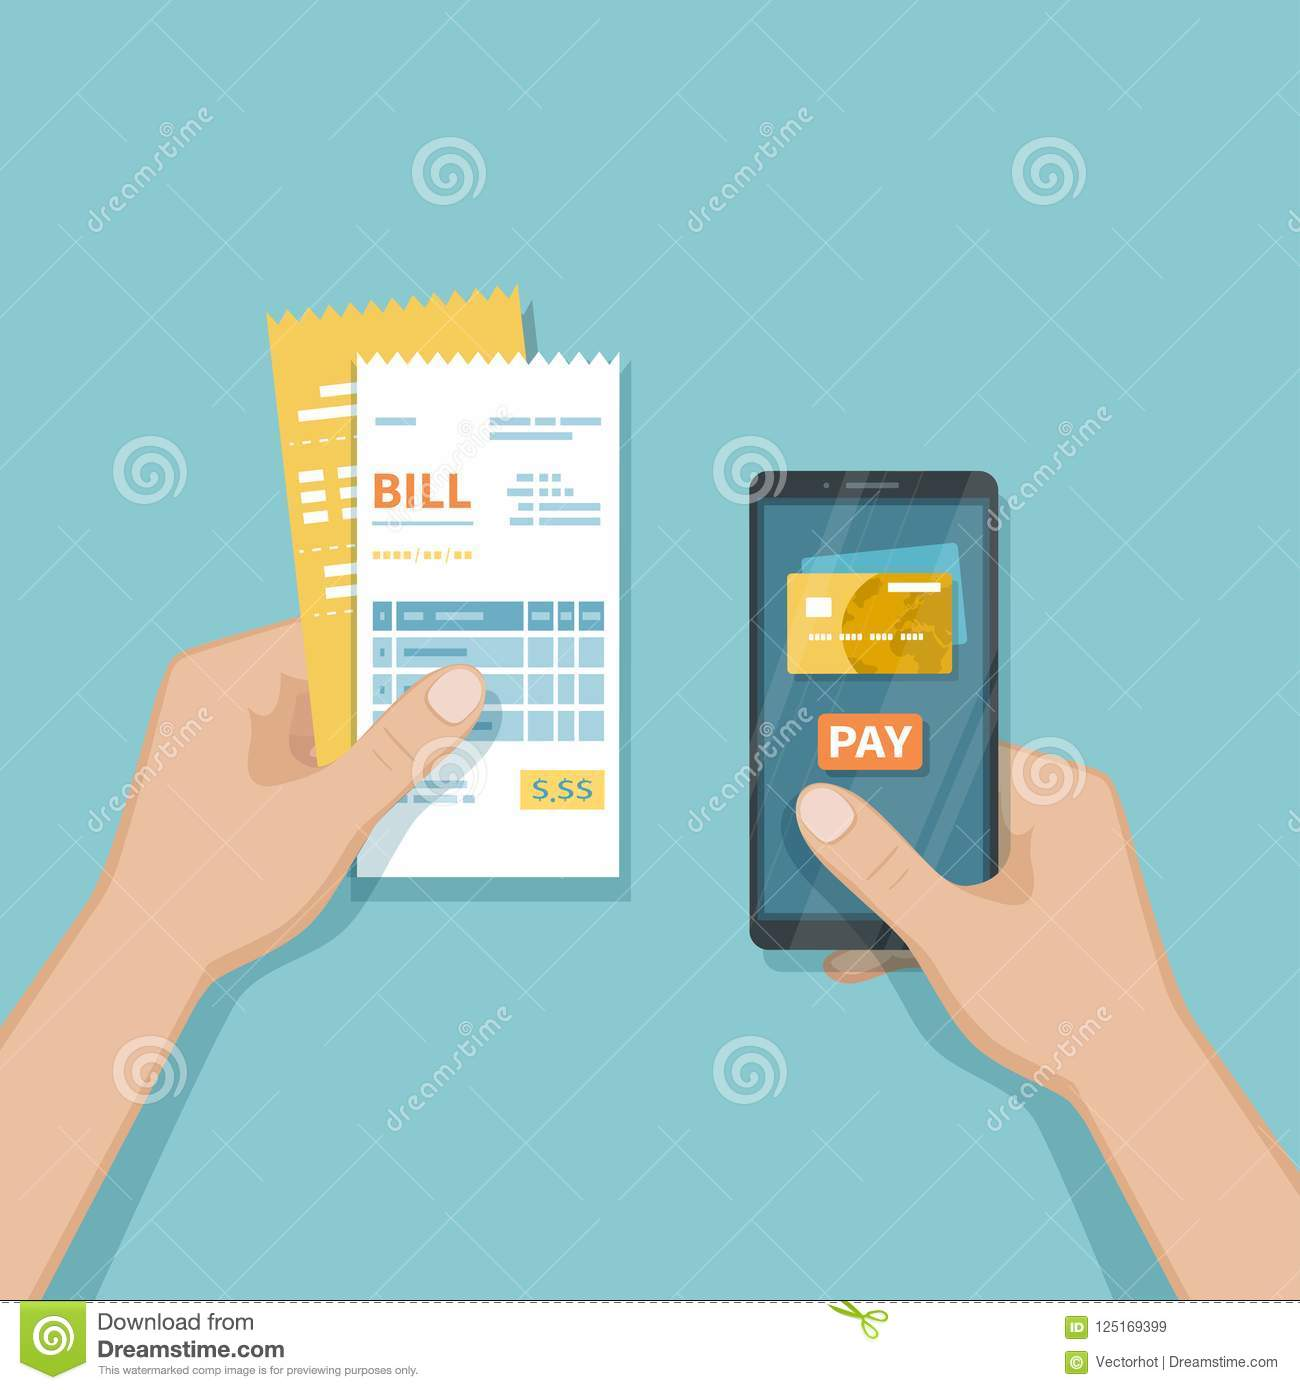 Mobile Payment for goods, services, shopping using smartphone. Online banking, pay with phone. Credit card on screen, button pay